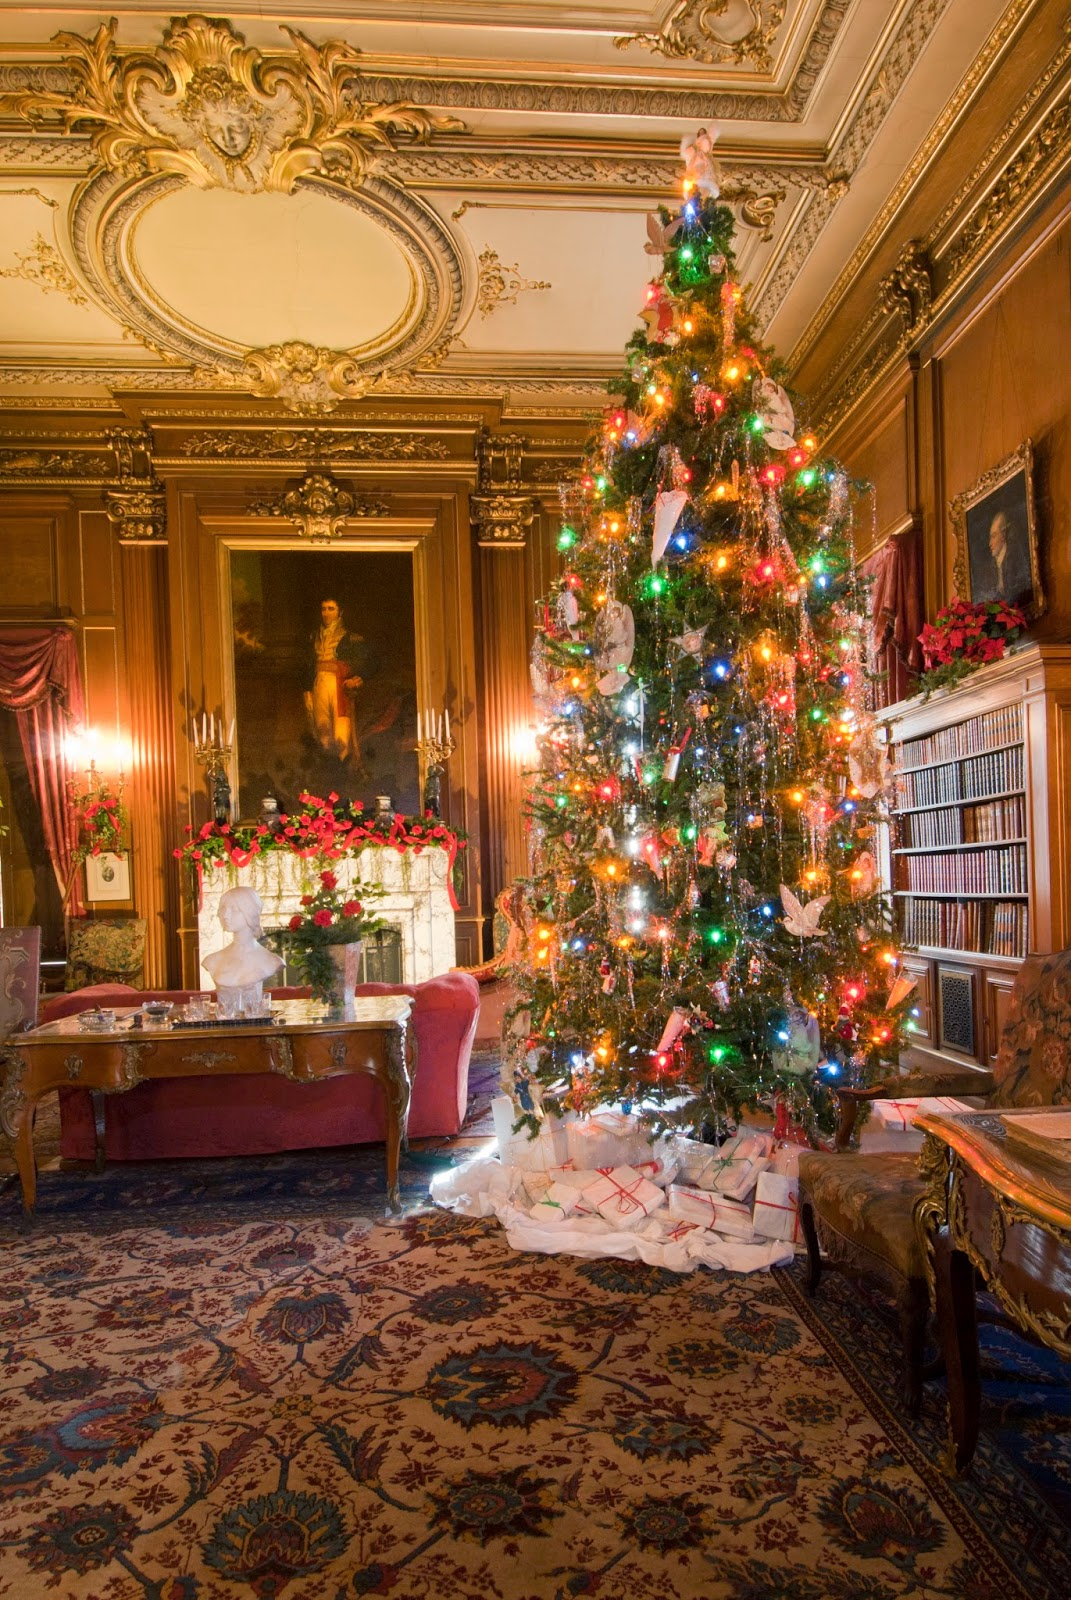 Staatsburgh state historic site a gilded age christmas for Site americain decoration noel